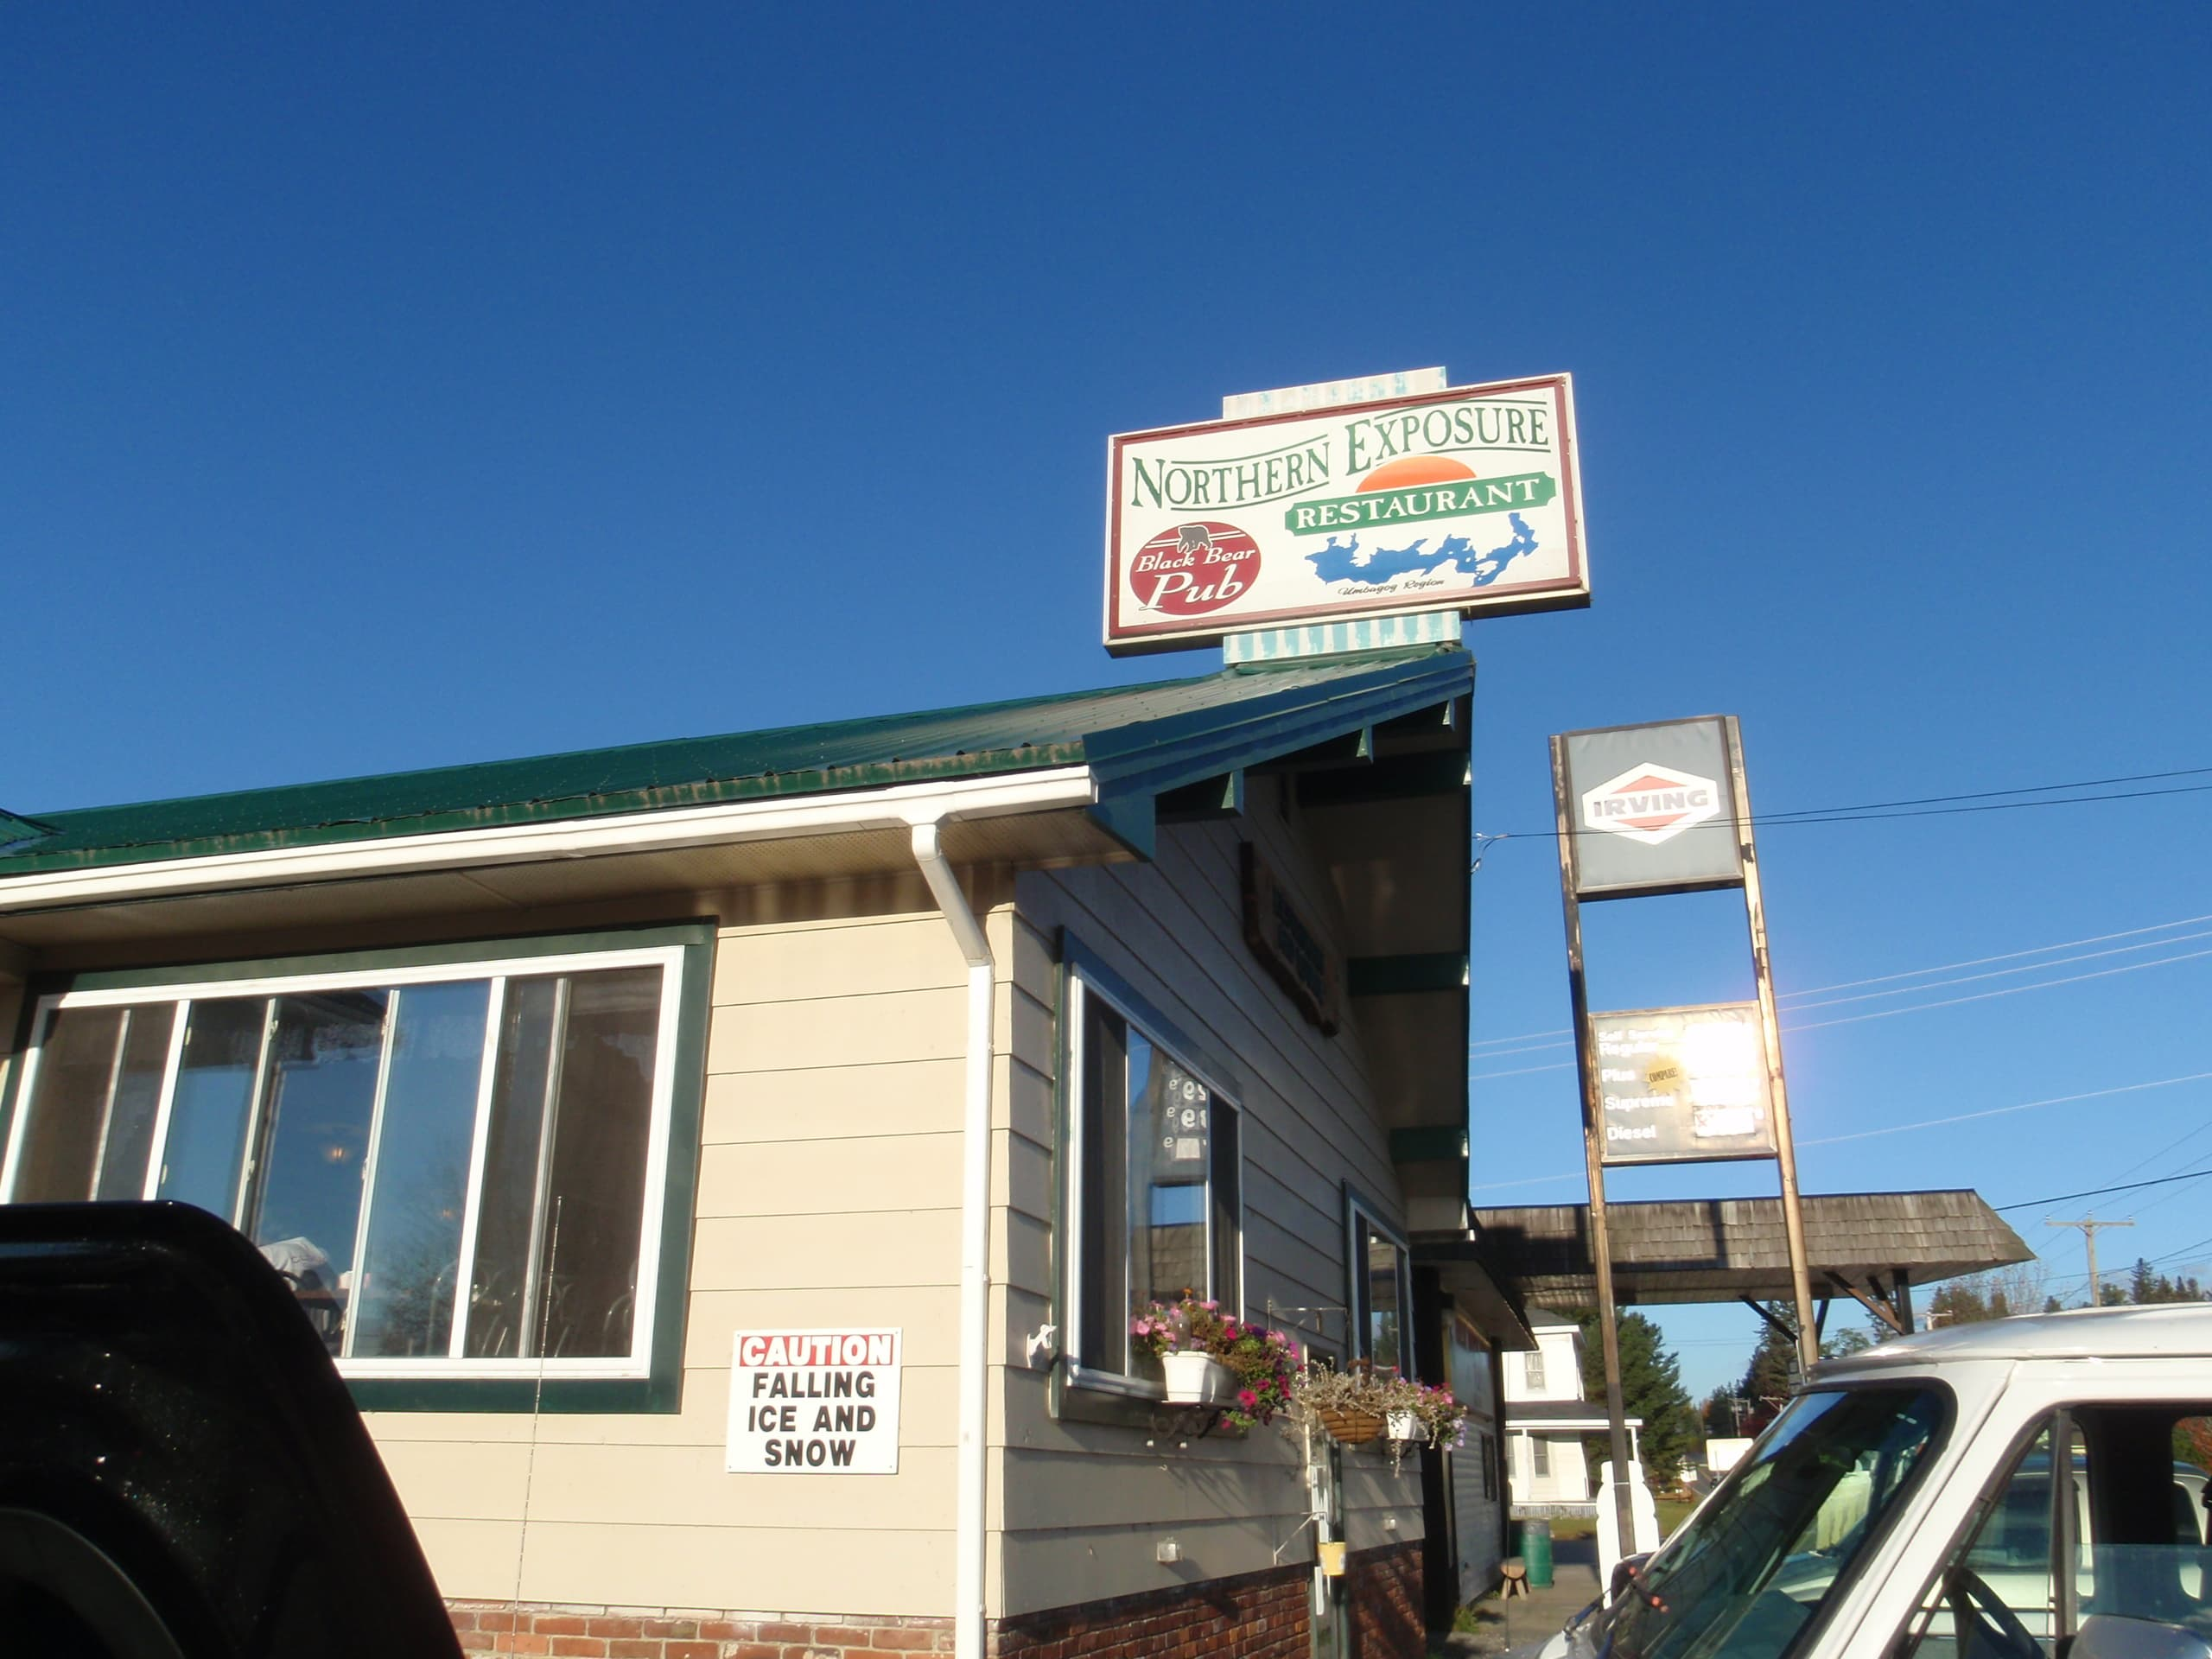 One of the Many Mom-and-Pop Diners we Visited